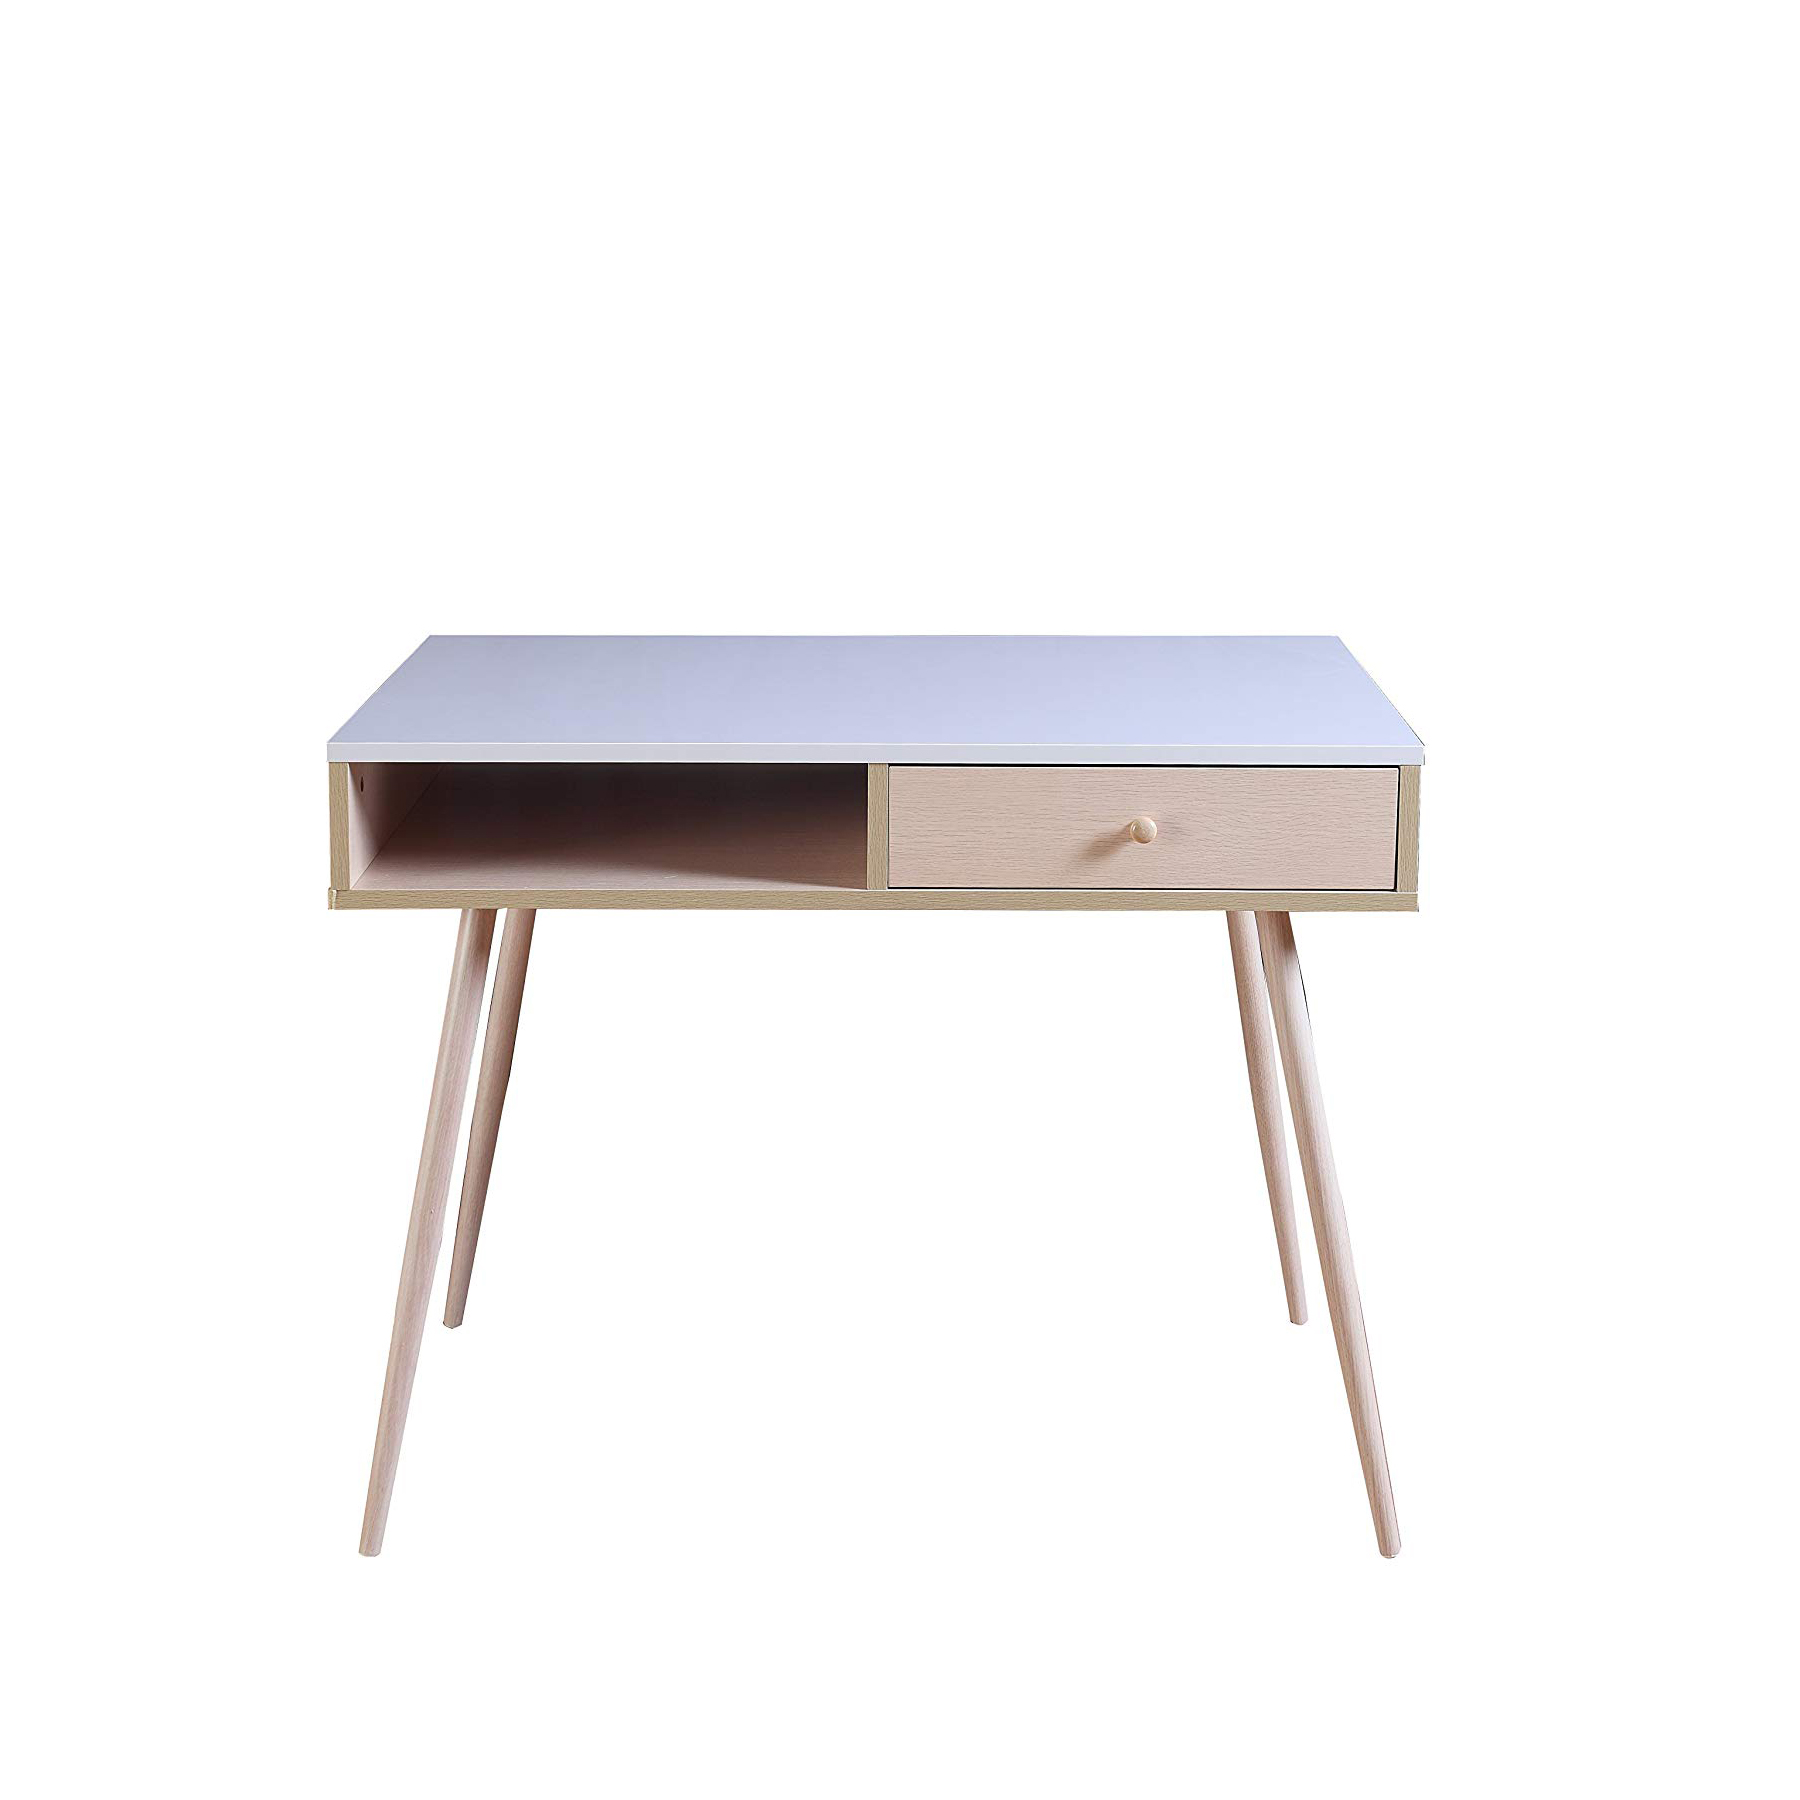 The 7 Best Desks For Small Spaces | Real Simple | Real Simple